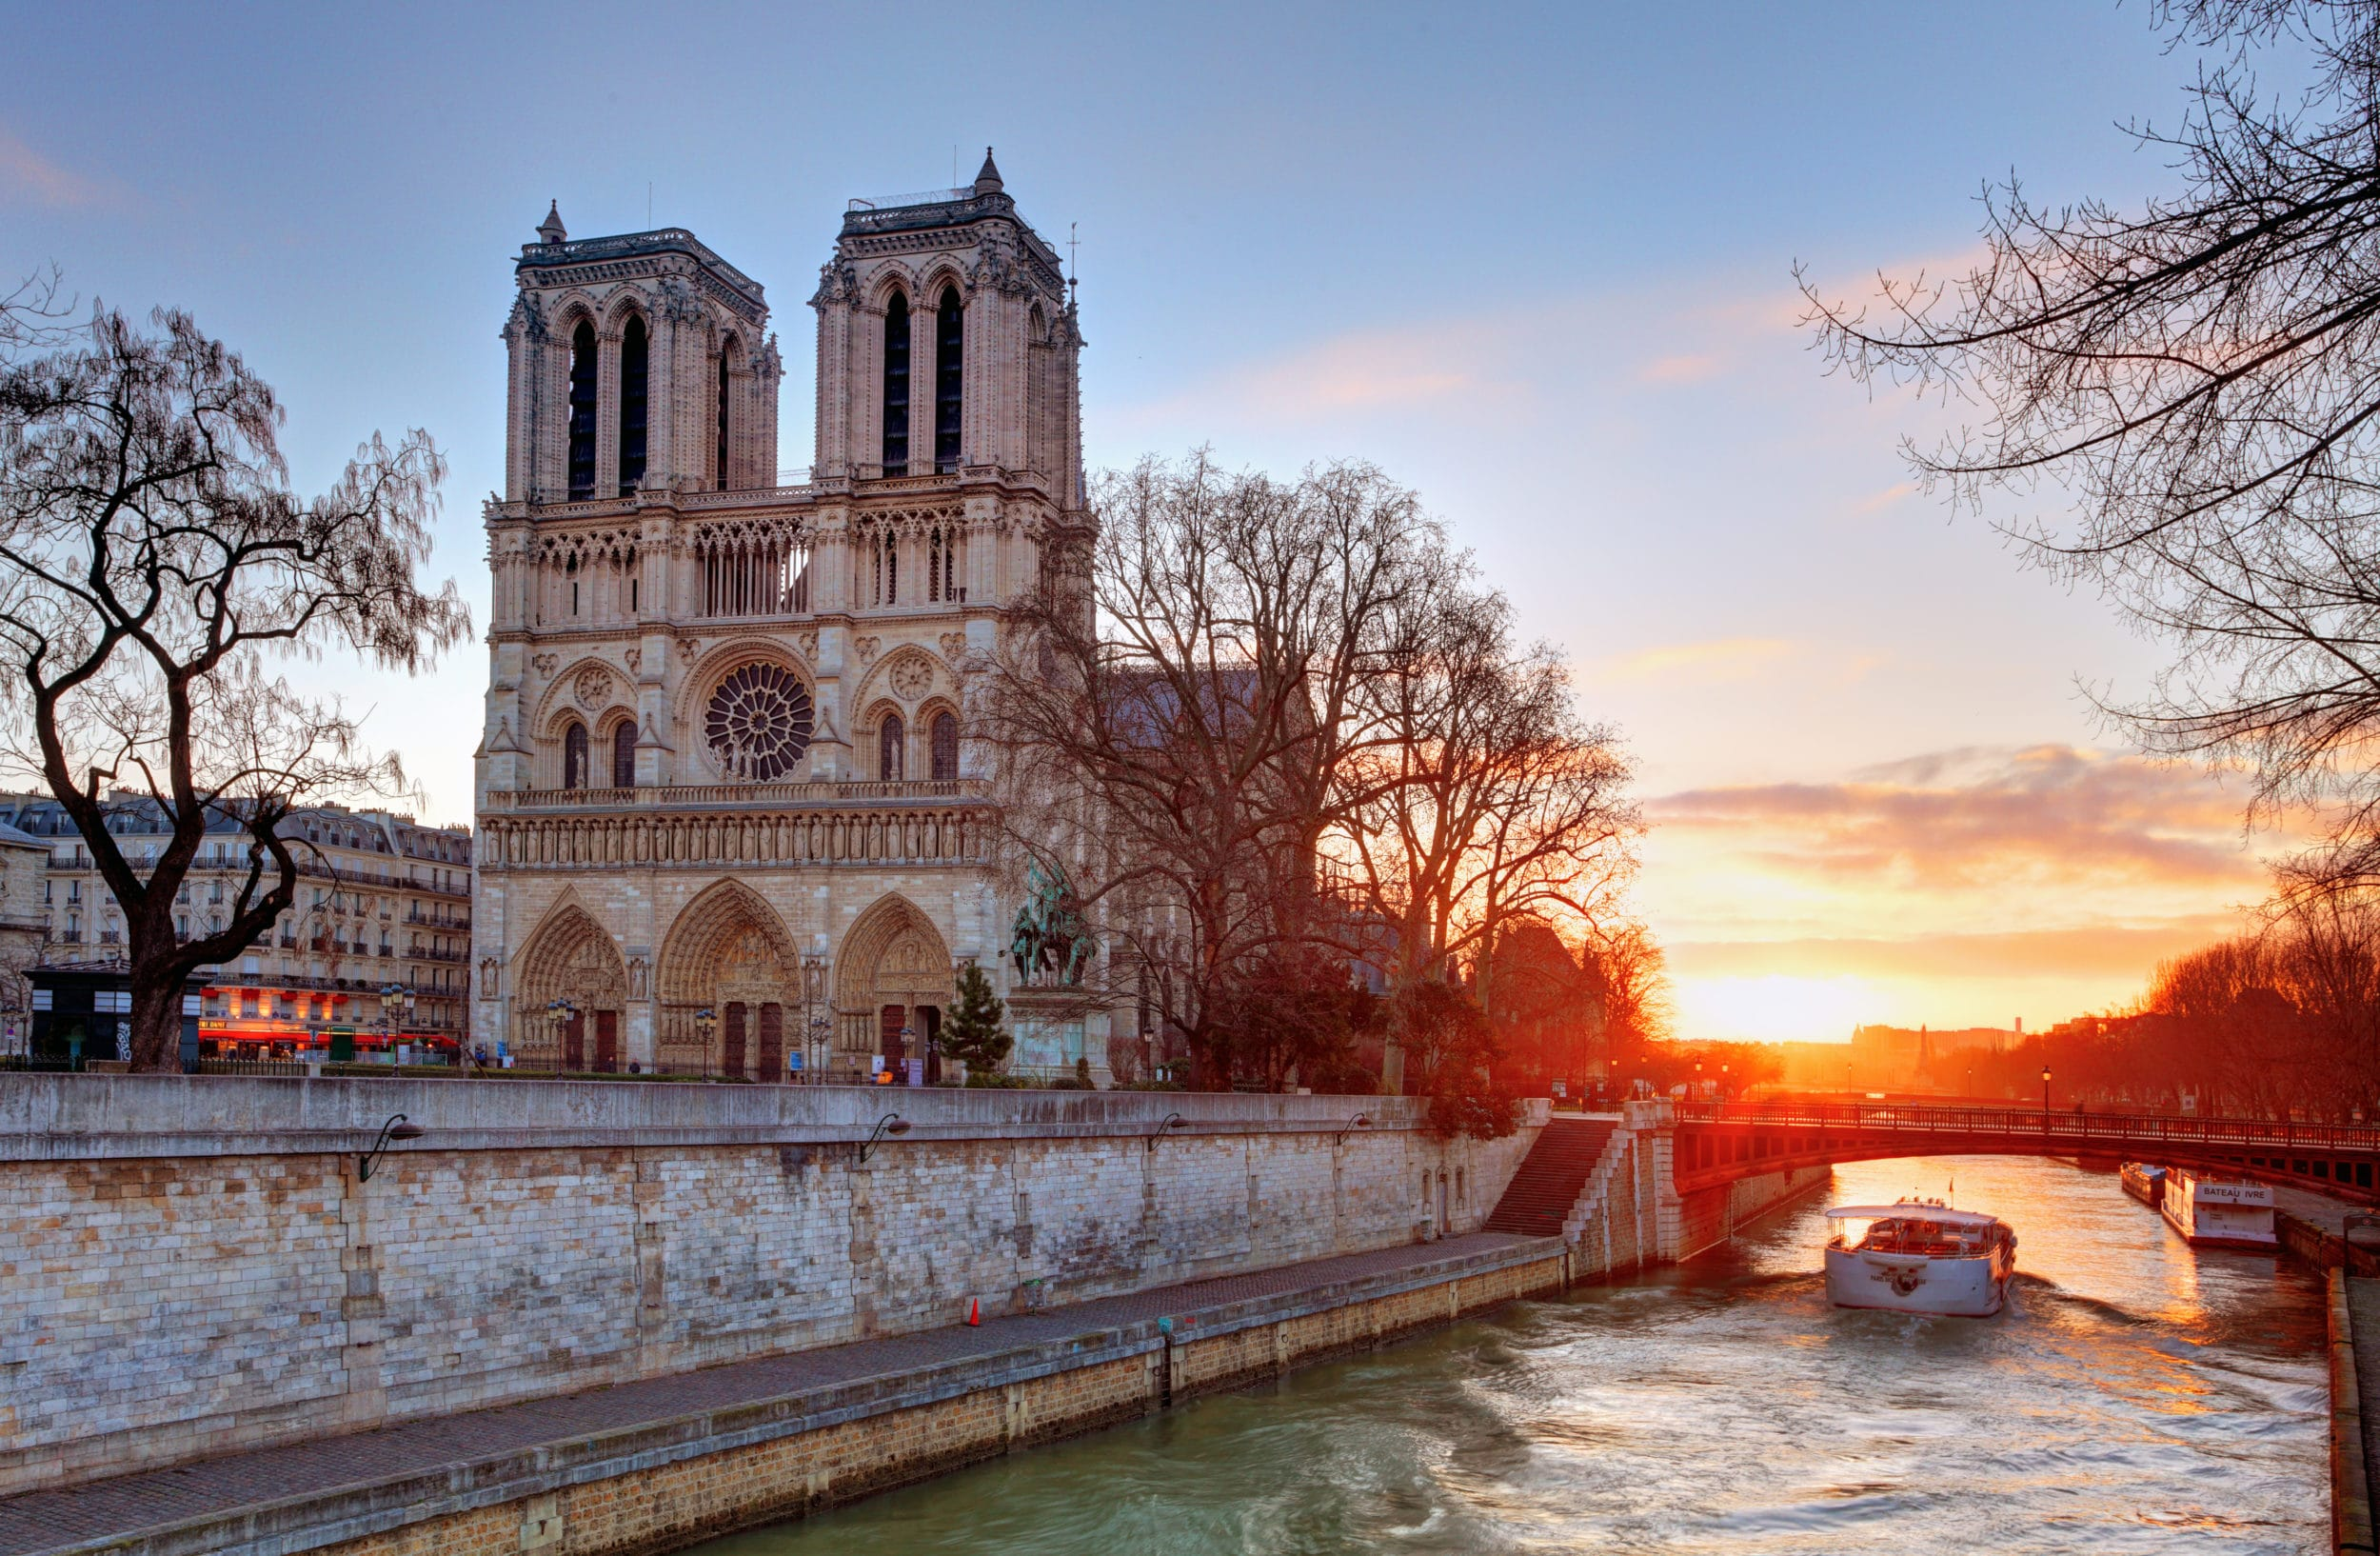 Things to do in Paris: Ile de la Cite and Notre Dame cathedral